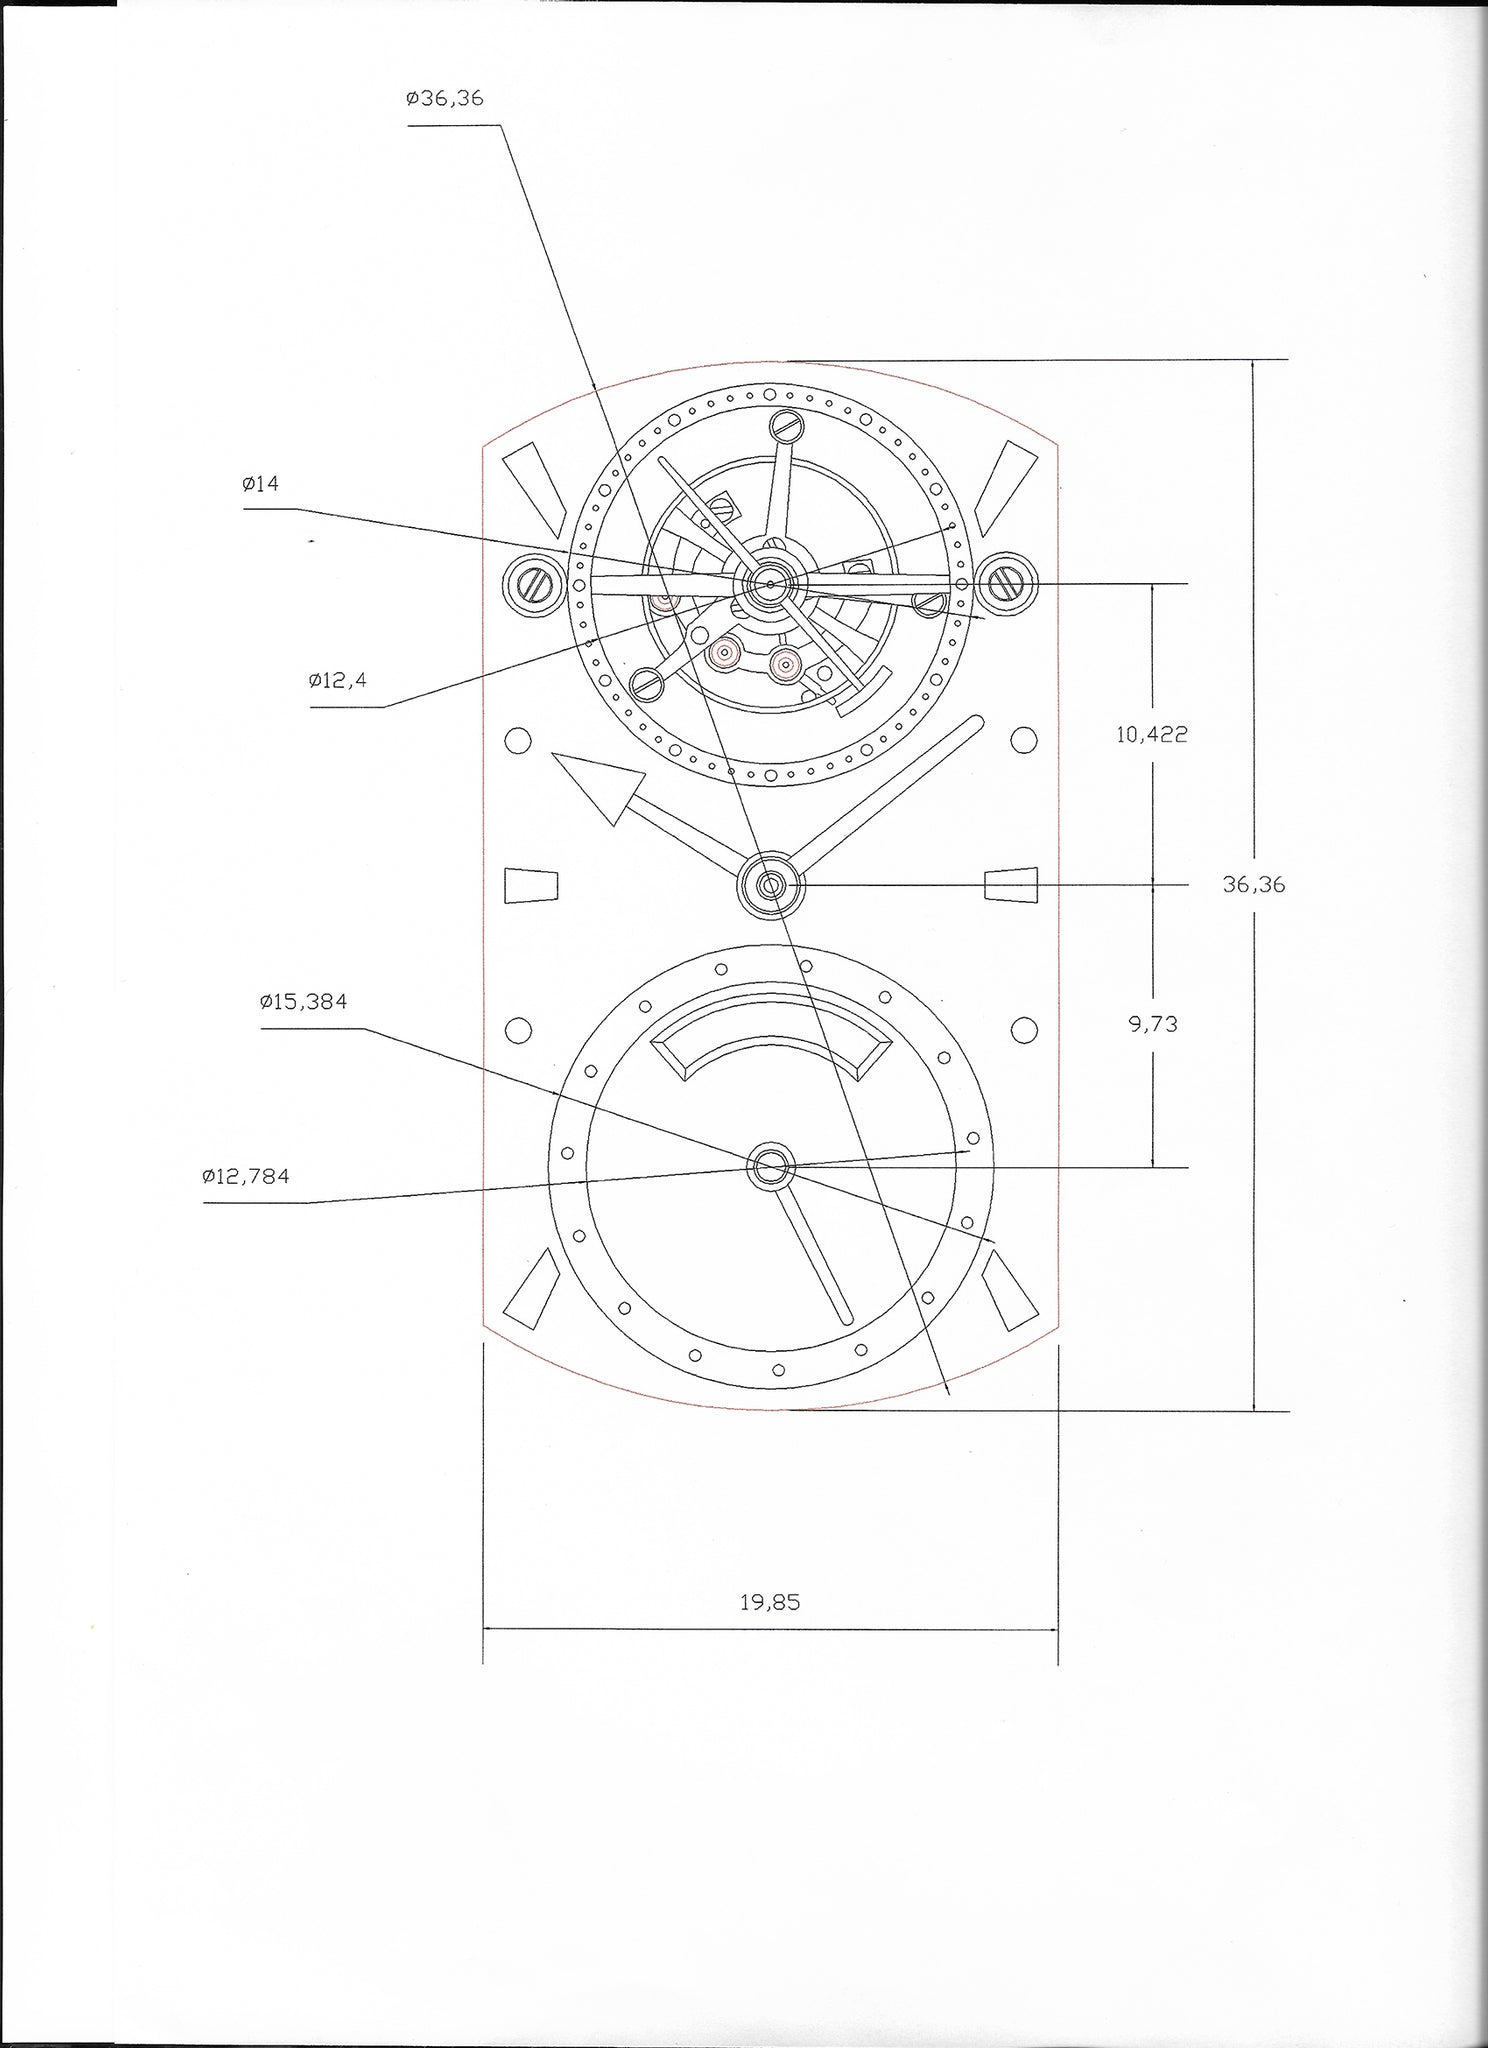 Design drawing for George Daniels Blue wristwatch